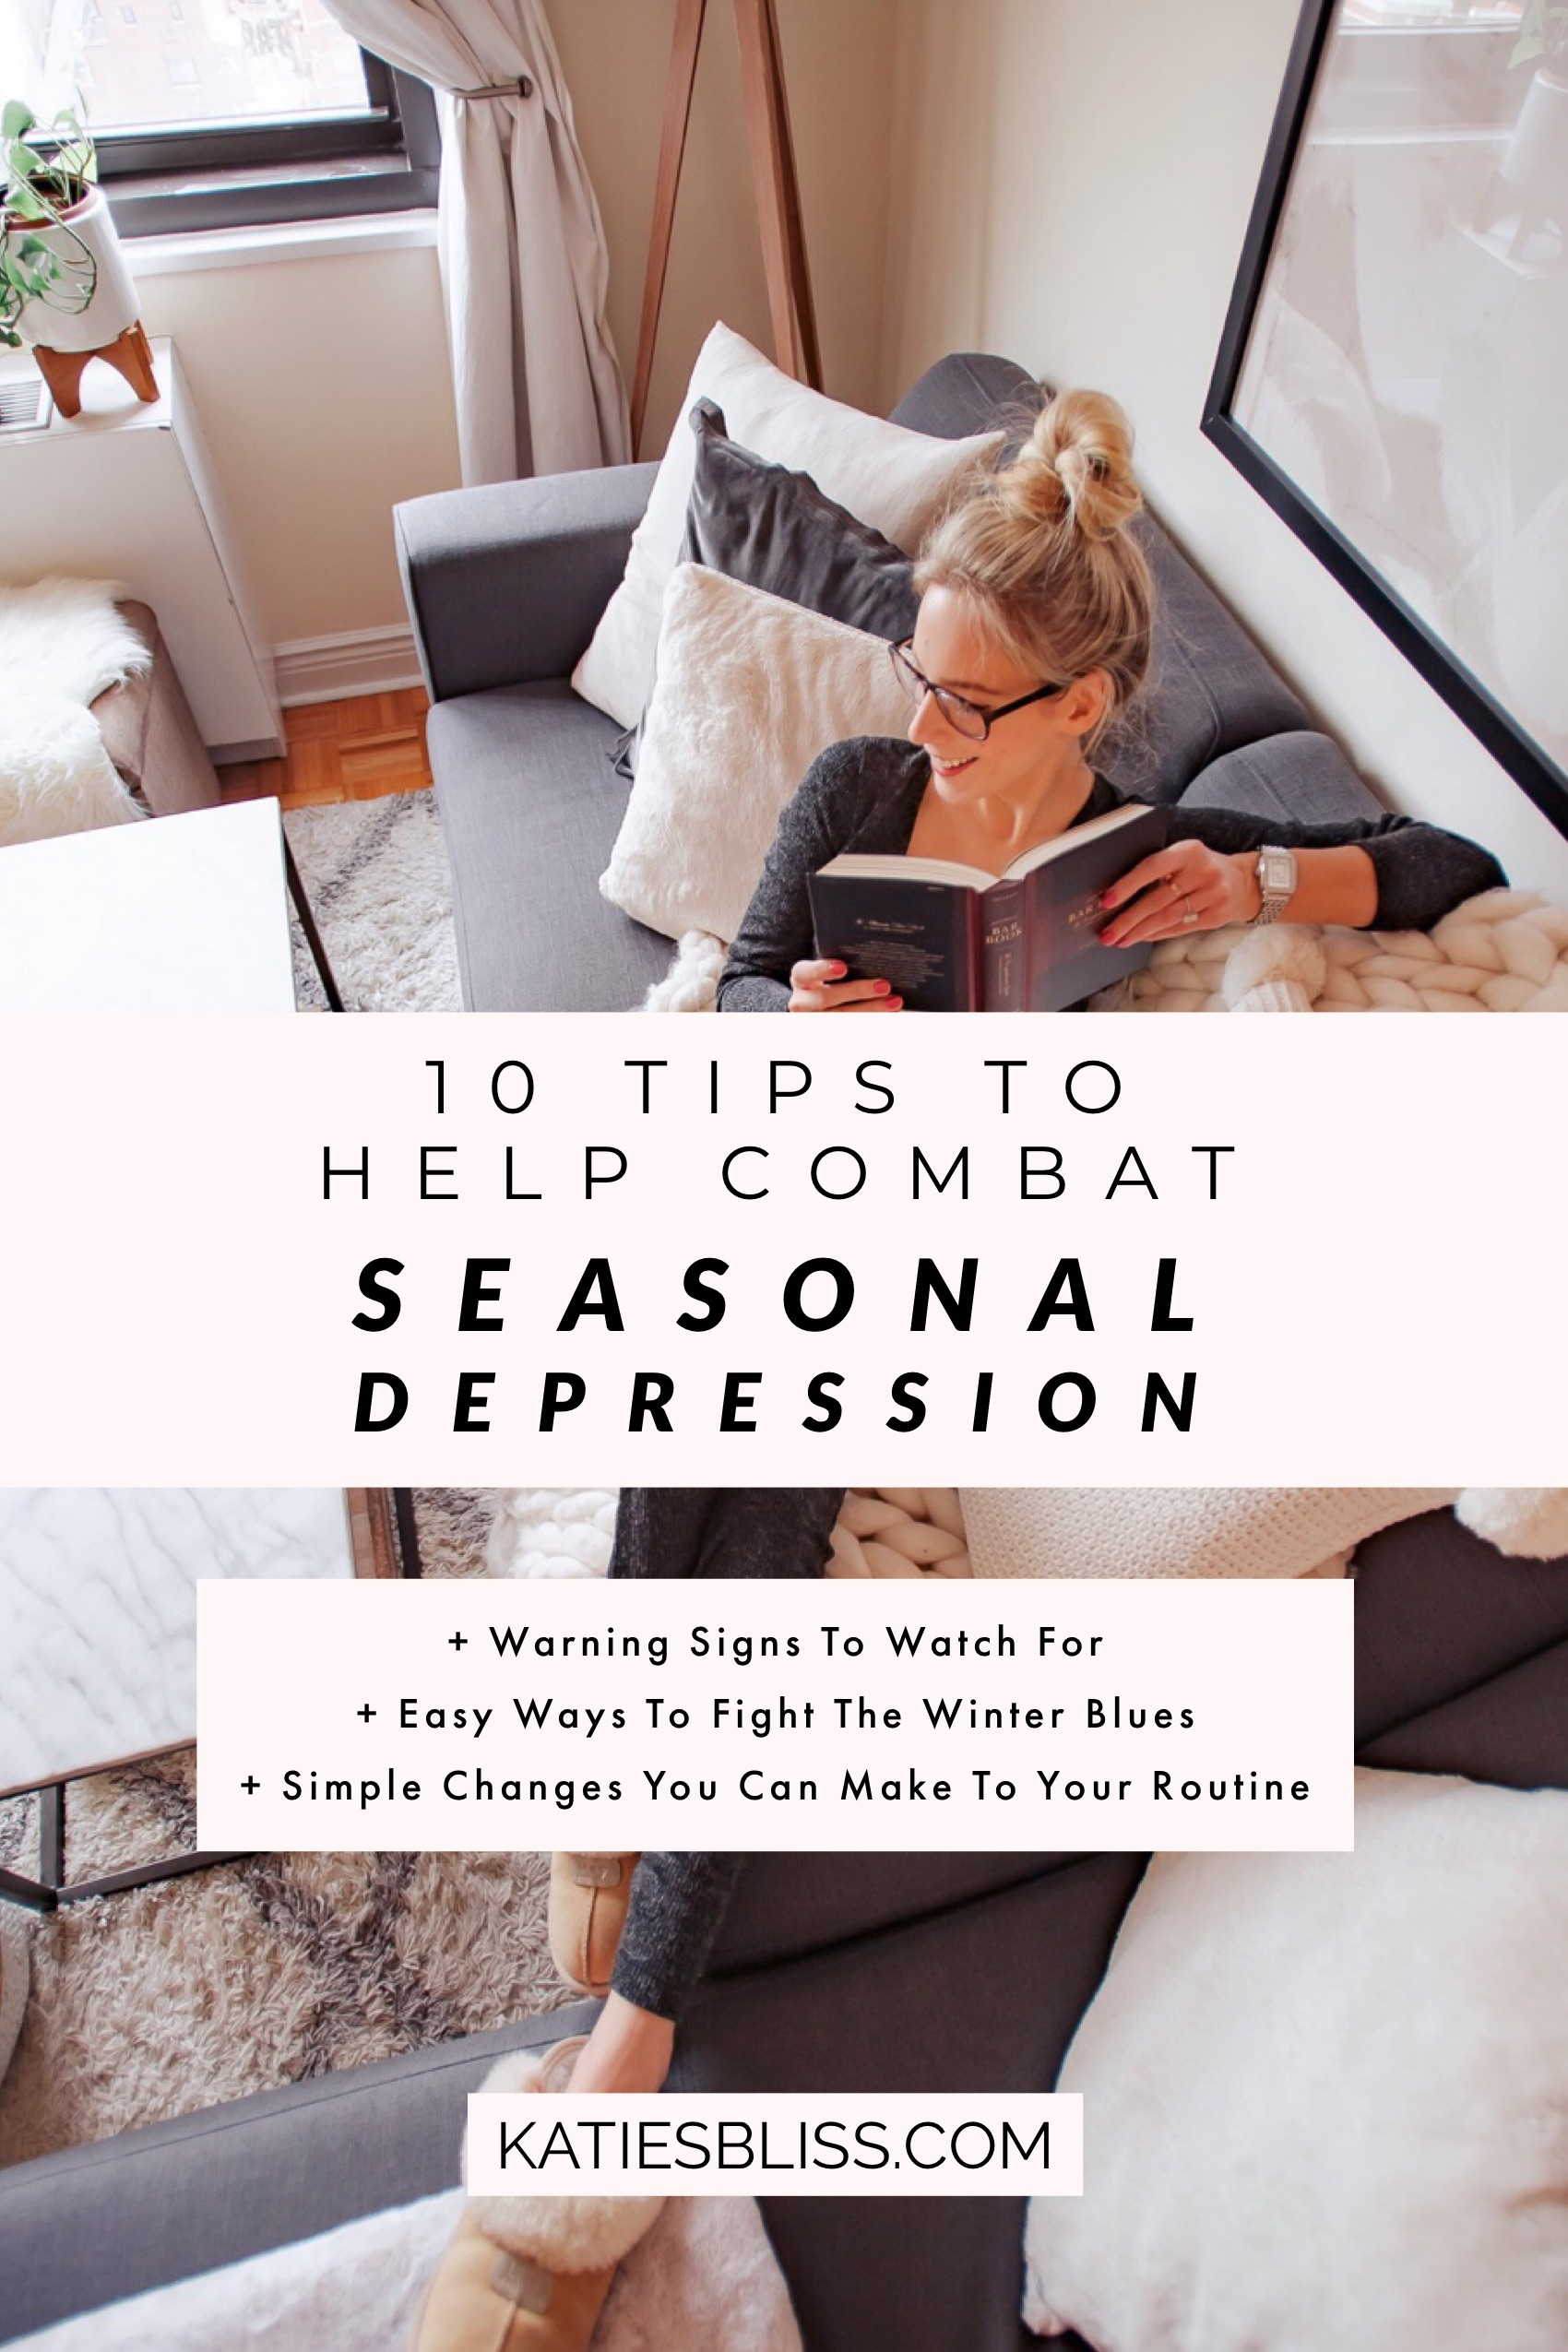 Tips For Fighting Seasonal Depression